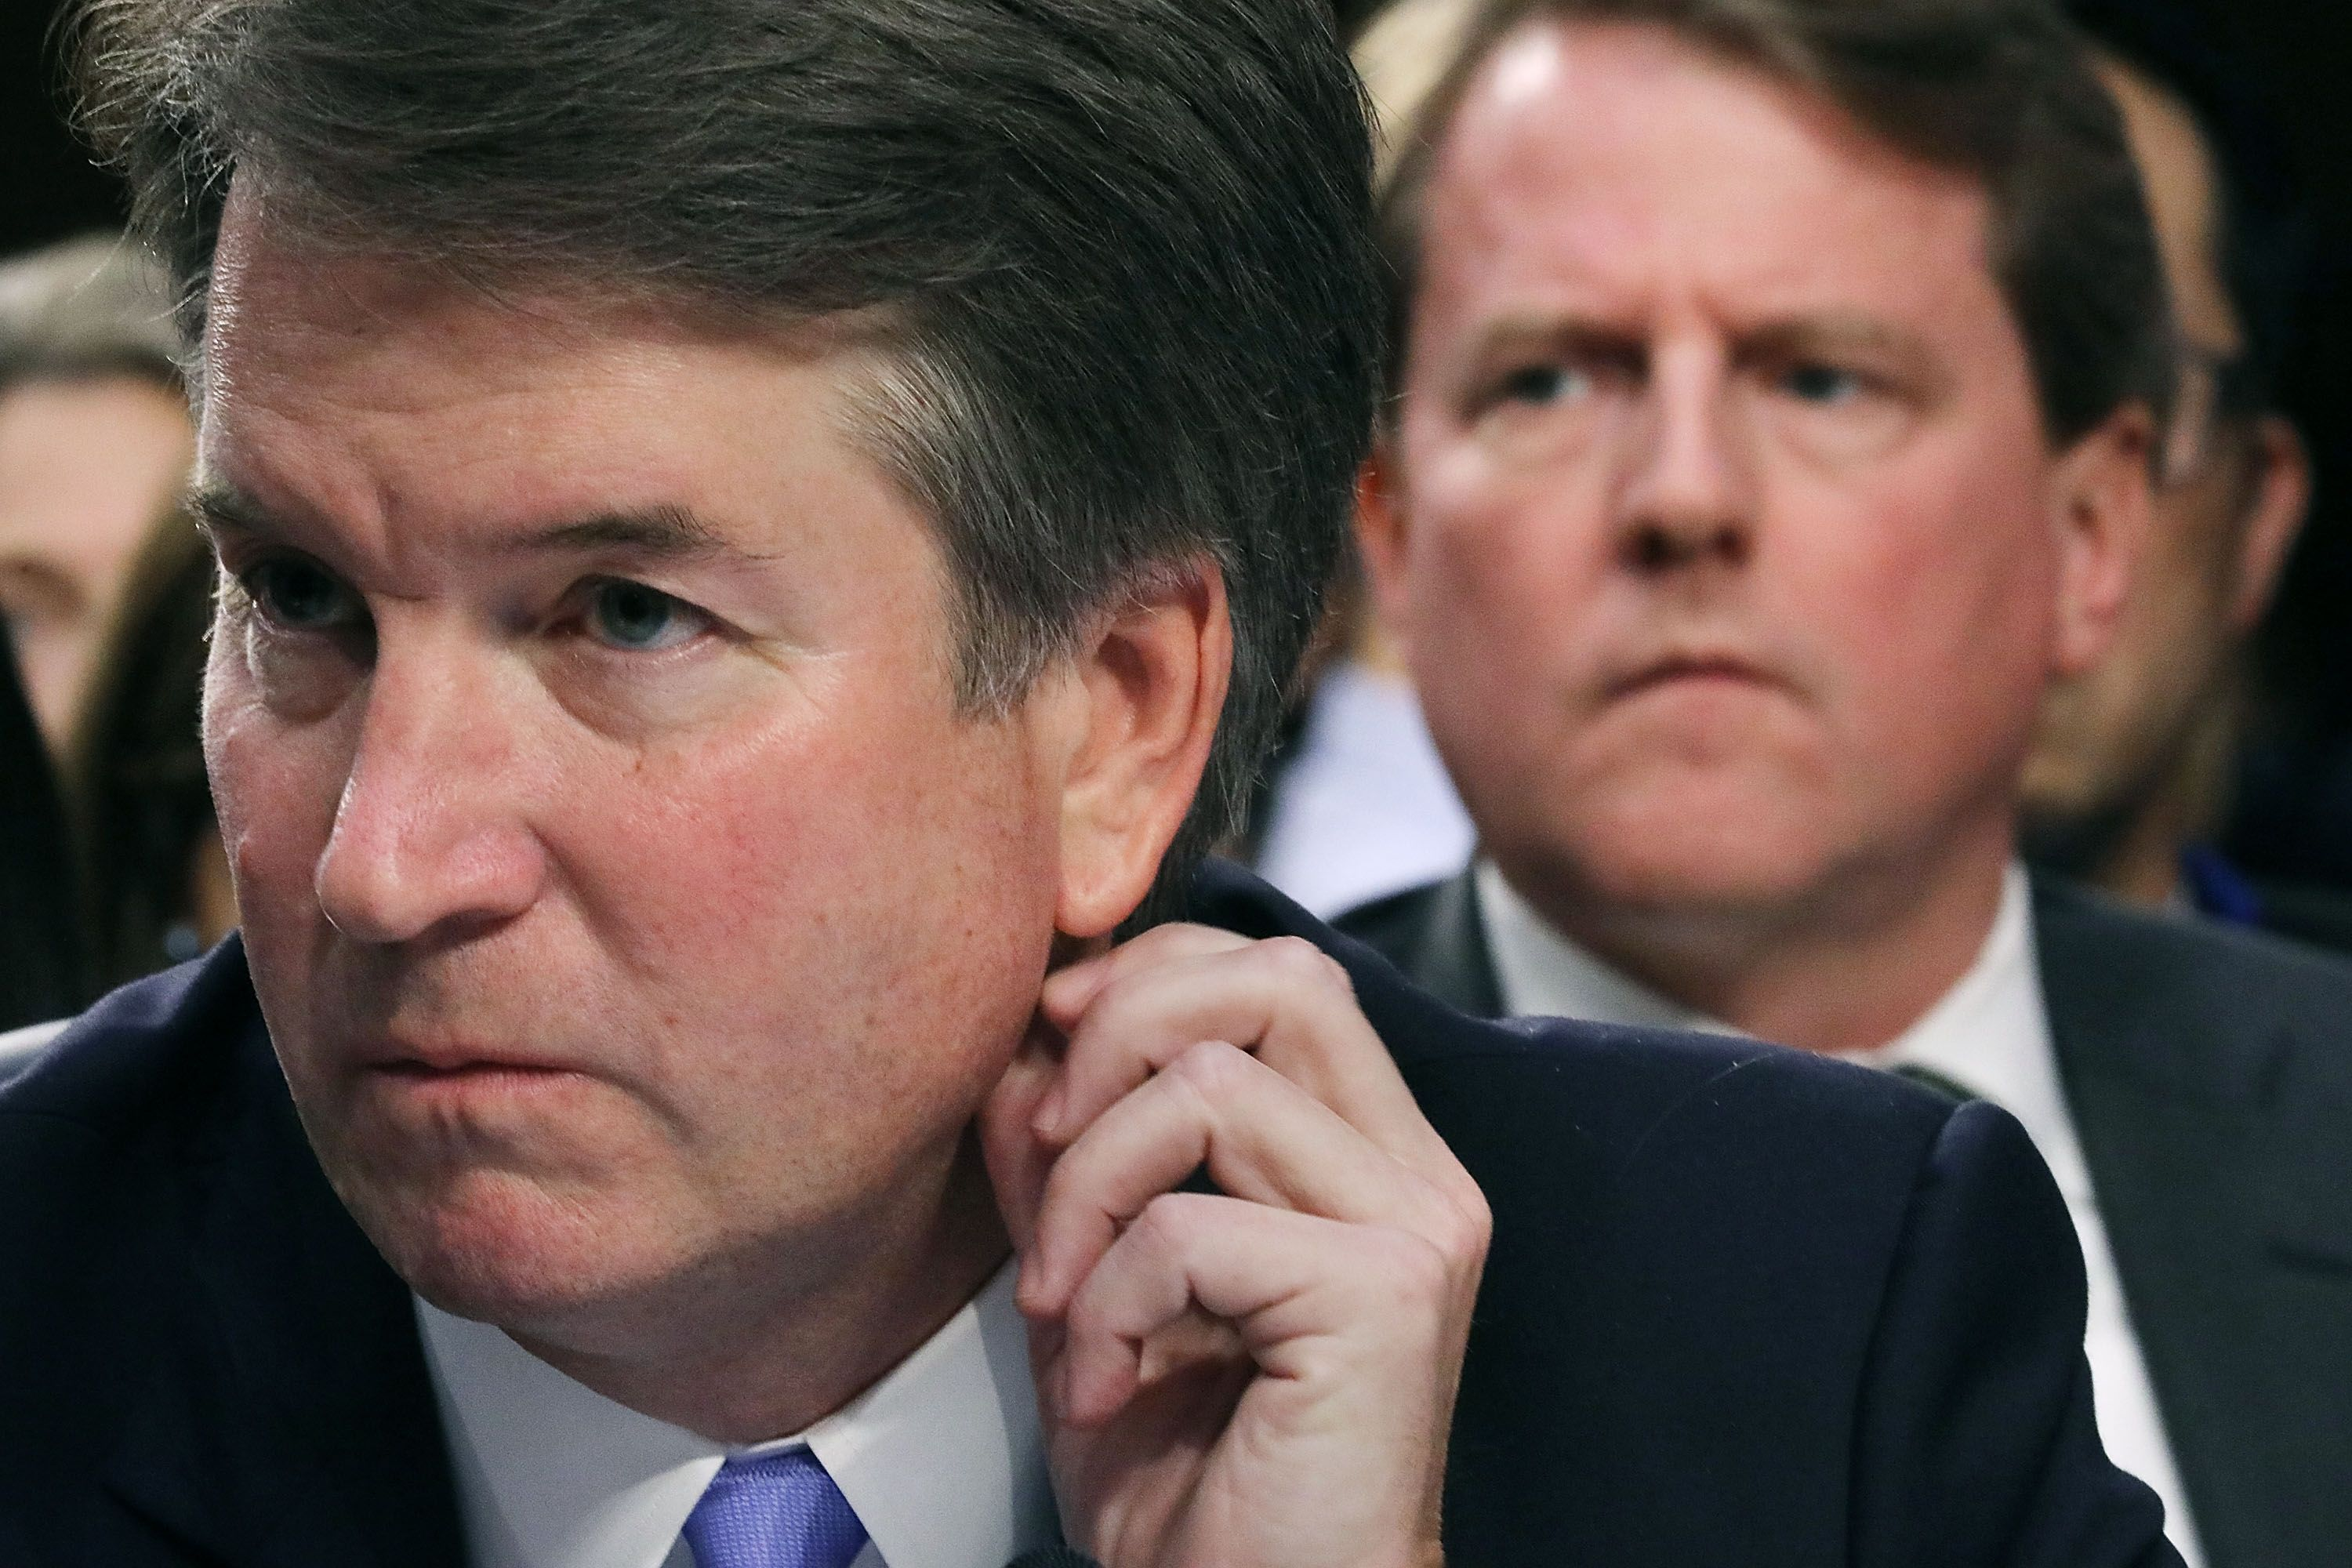 A Third Woman Has Come Forward to Accuse Brett Kavanaugh of Sexual Misconduct